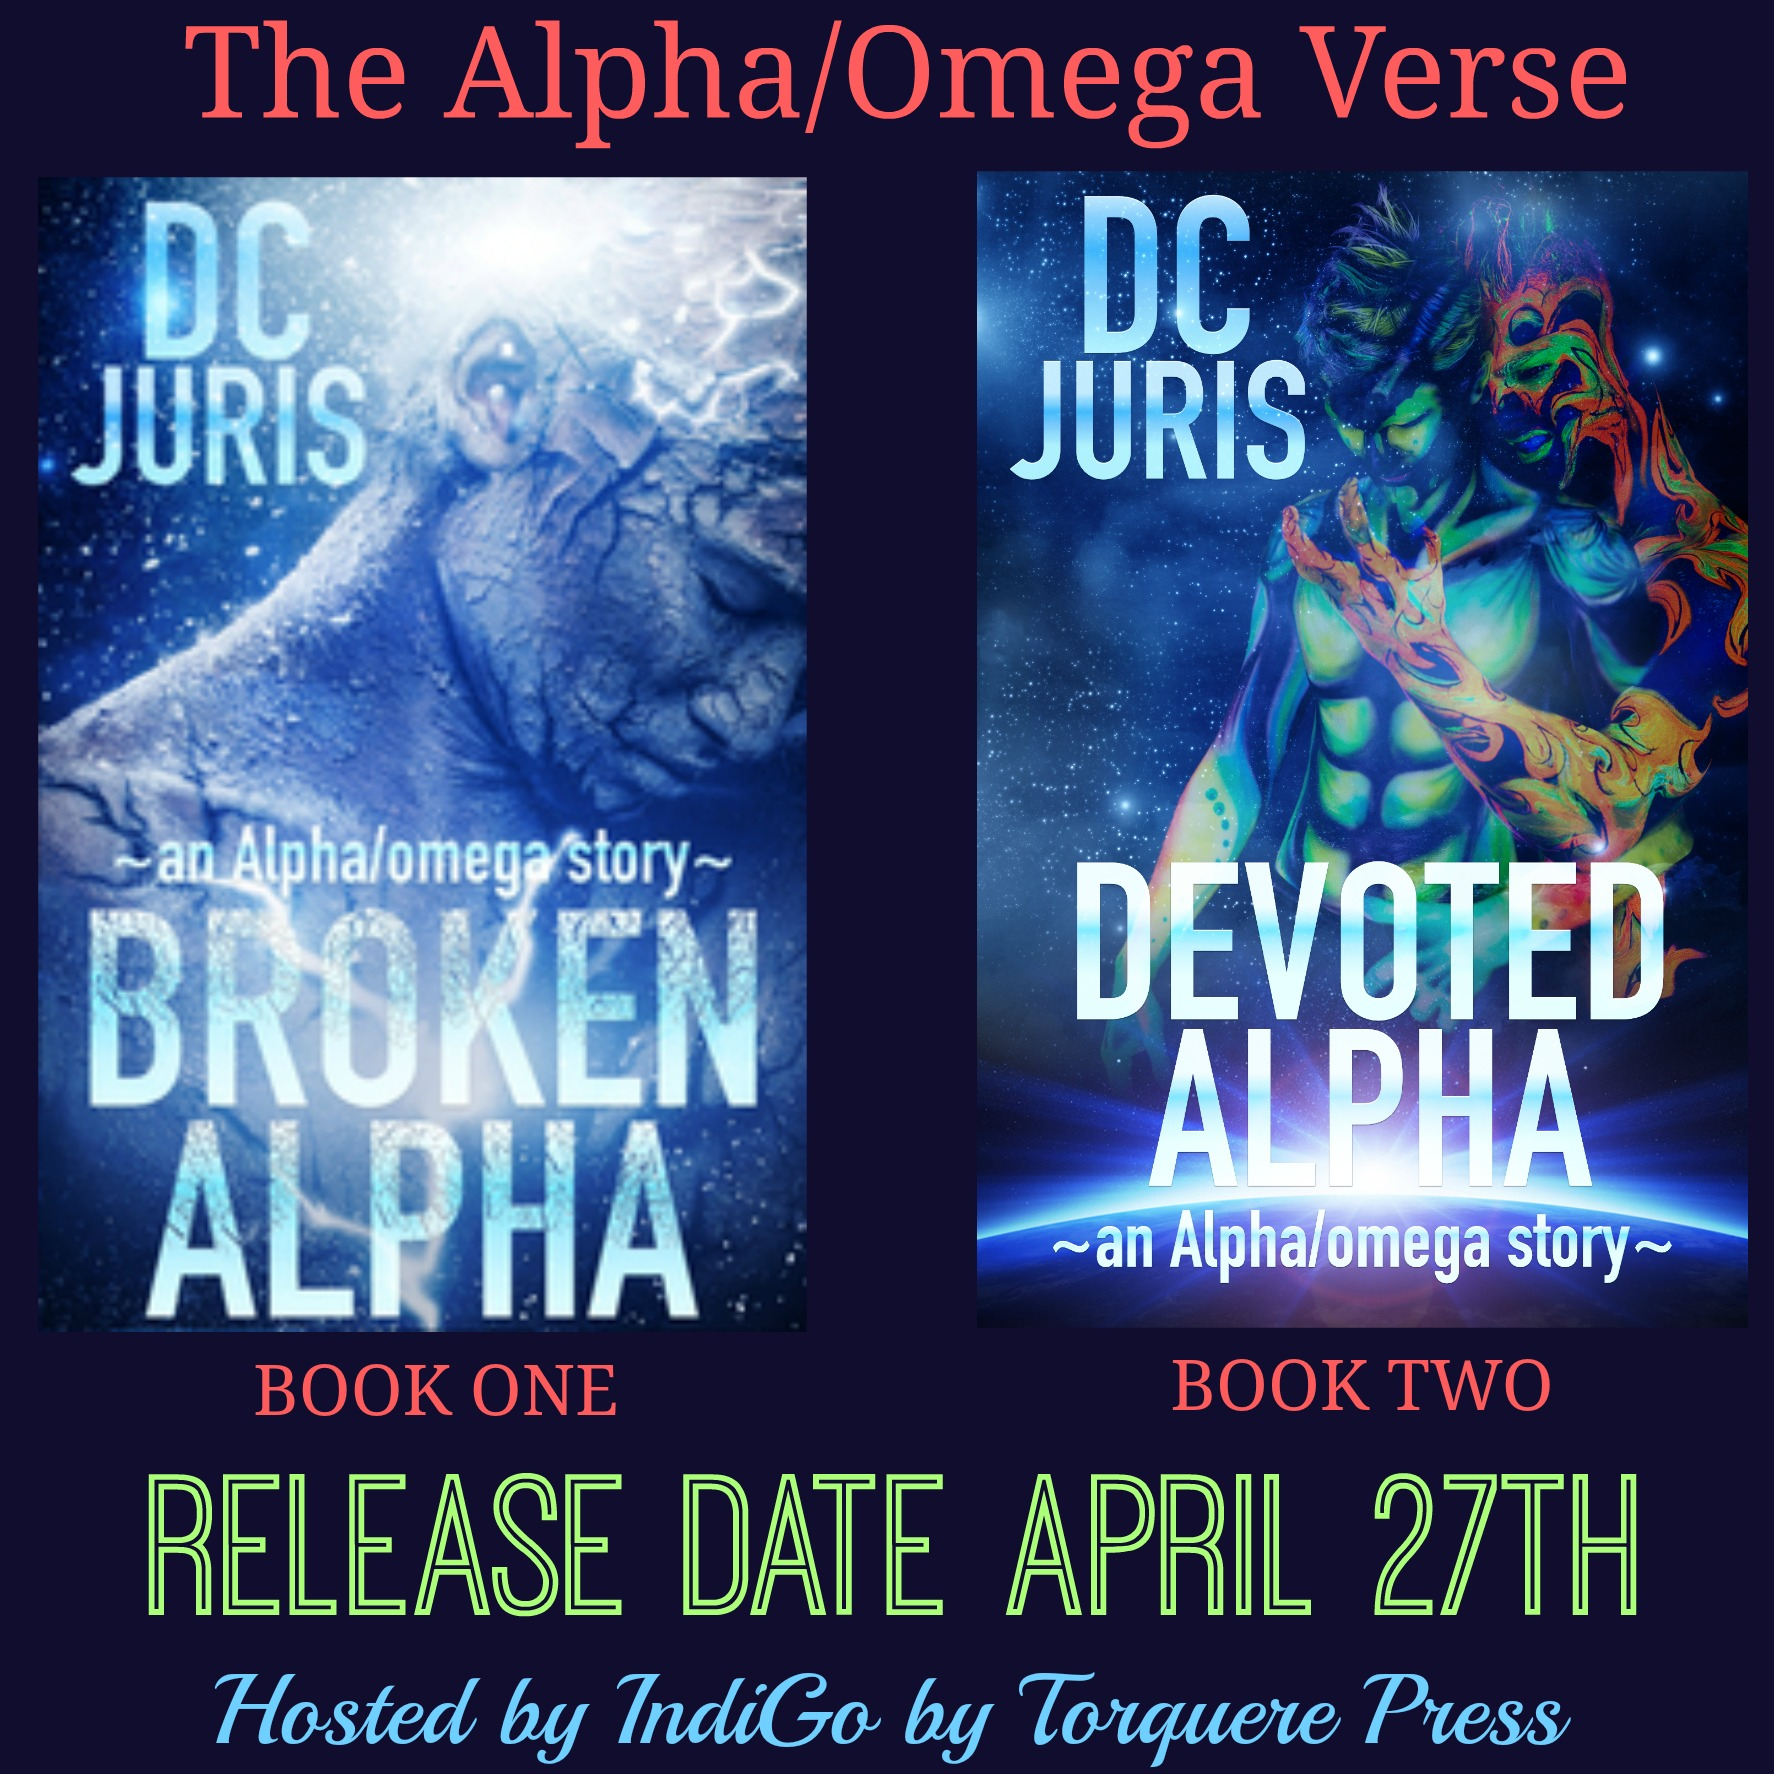 Book blast devoted alpha by dc juris elisa my reviews and ramblings devoted alpha square v2 fandeluxe Image collections